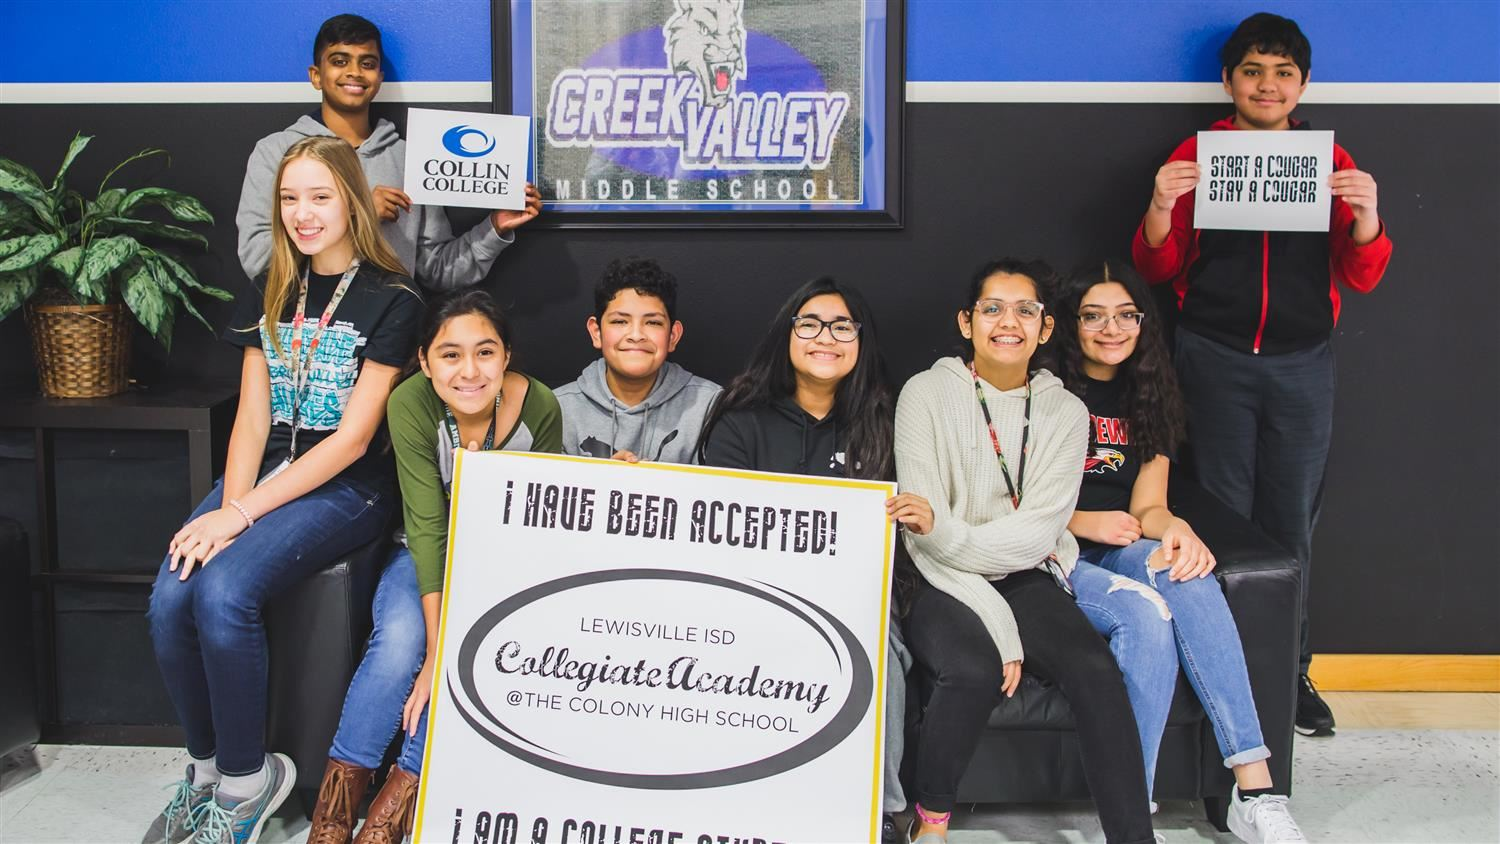 Creek Valley Students Surprised with Exciting News